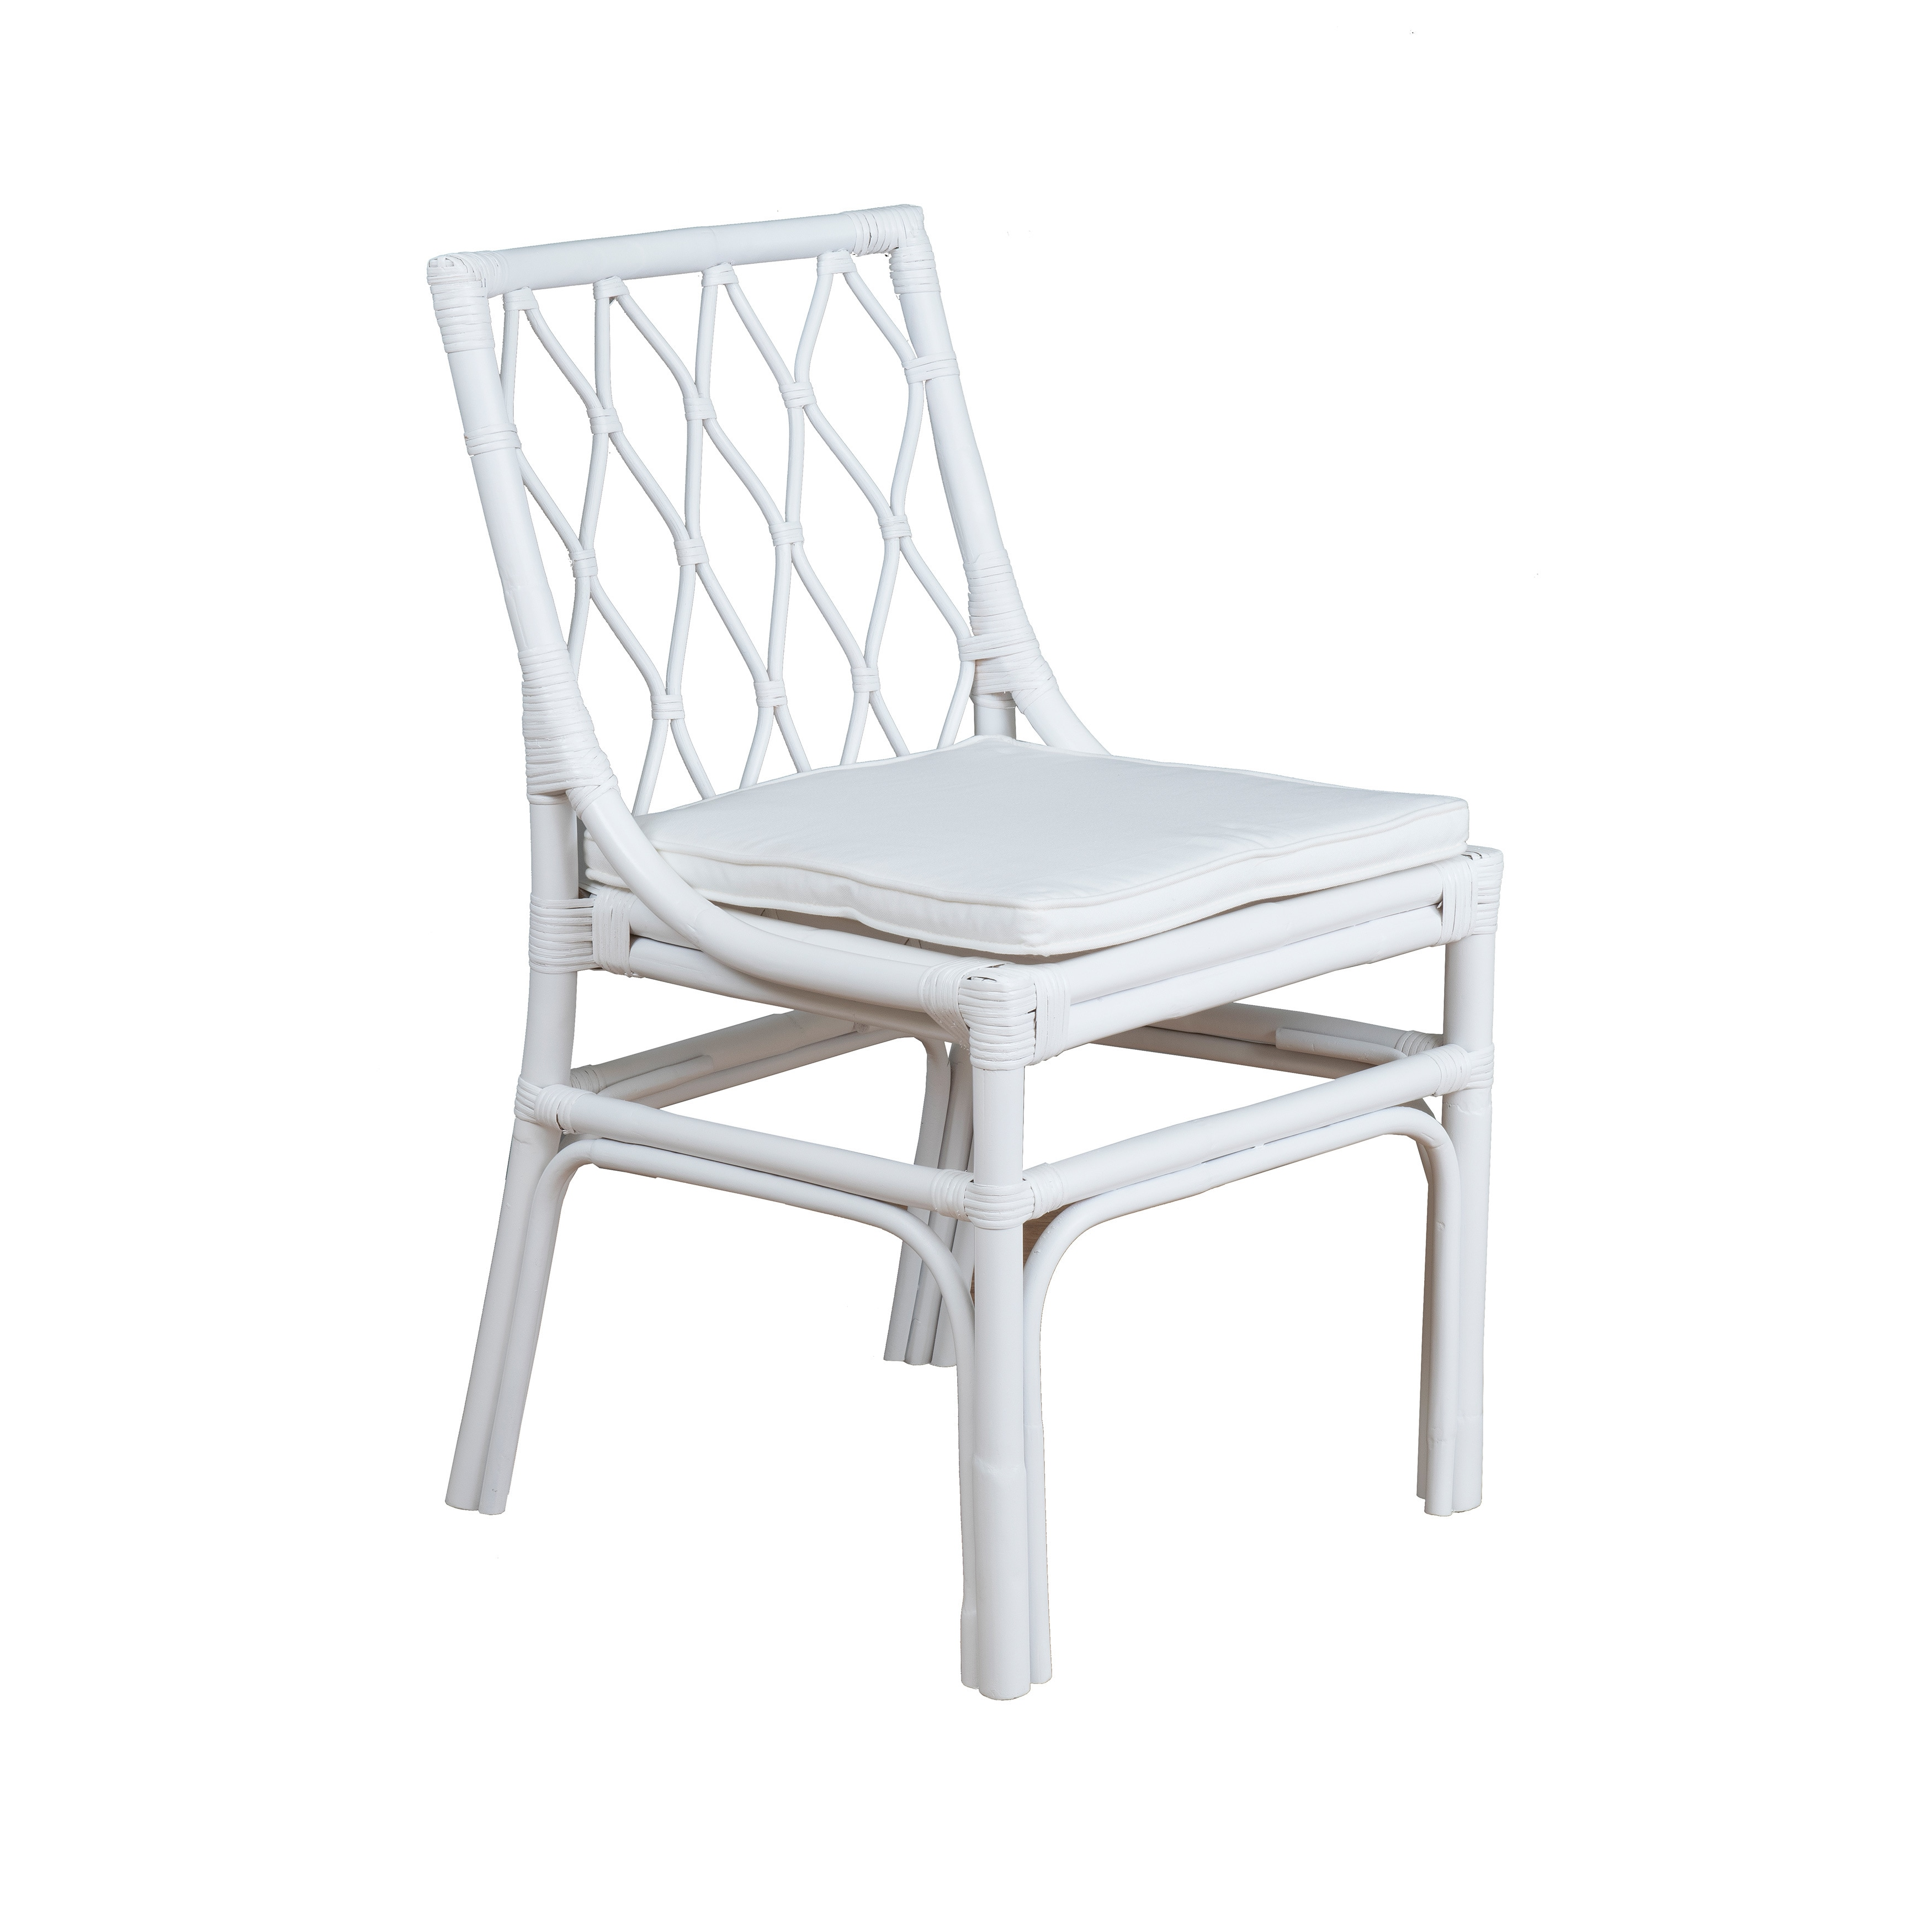 Magnificent East At Mains Sarasi Rattan Dining Chair Set Of 2 Ncnpc Chair Design For Home Ncnpcorg